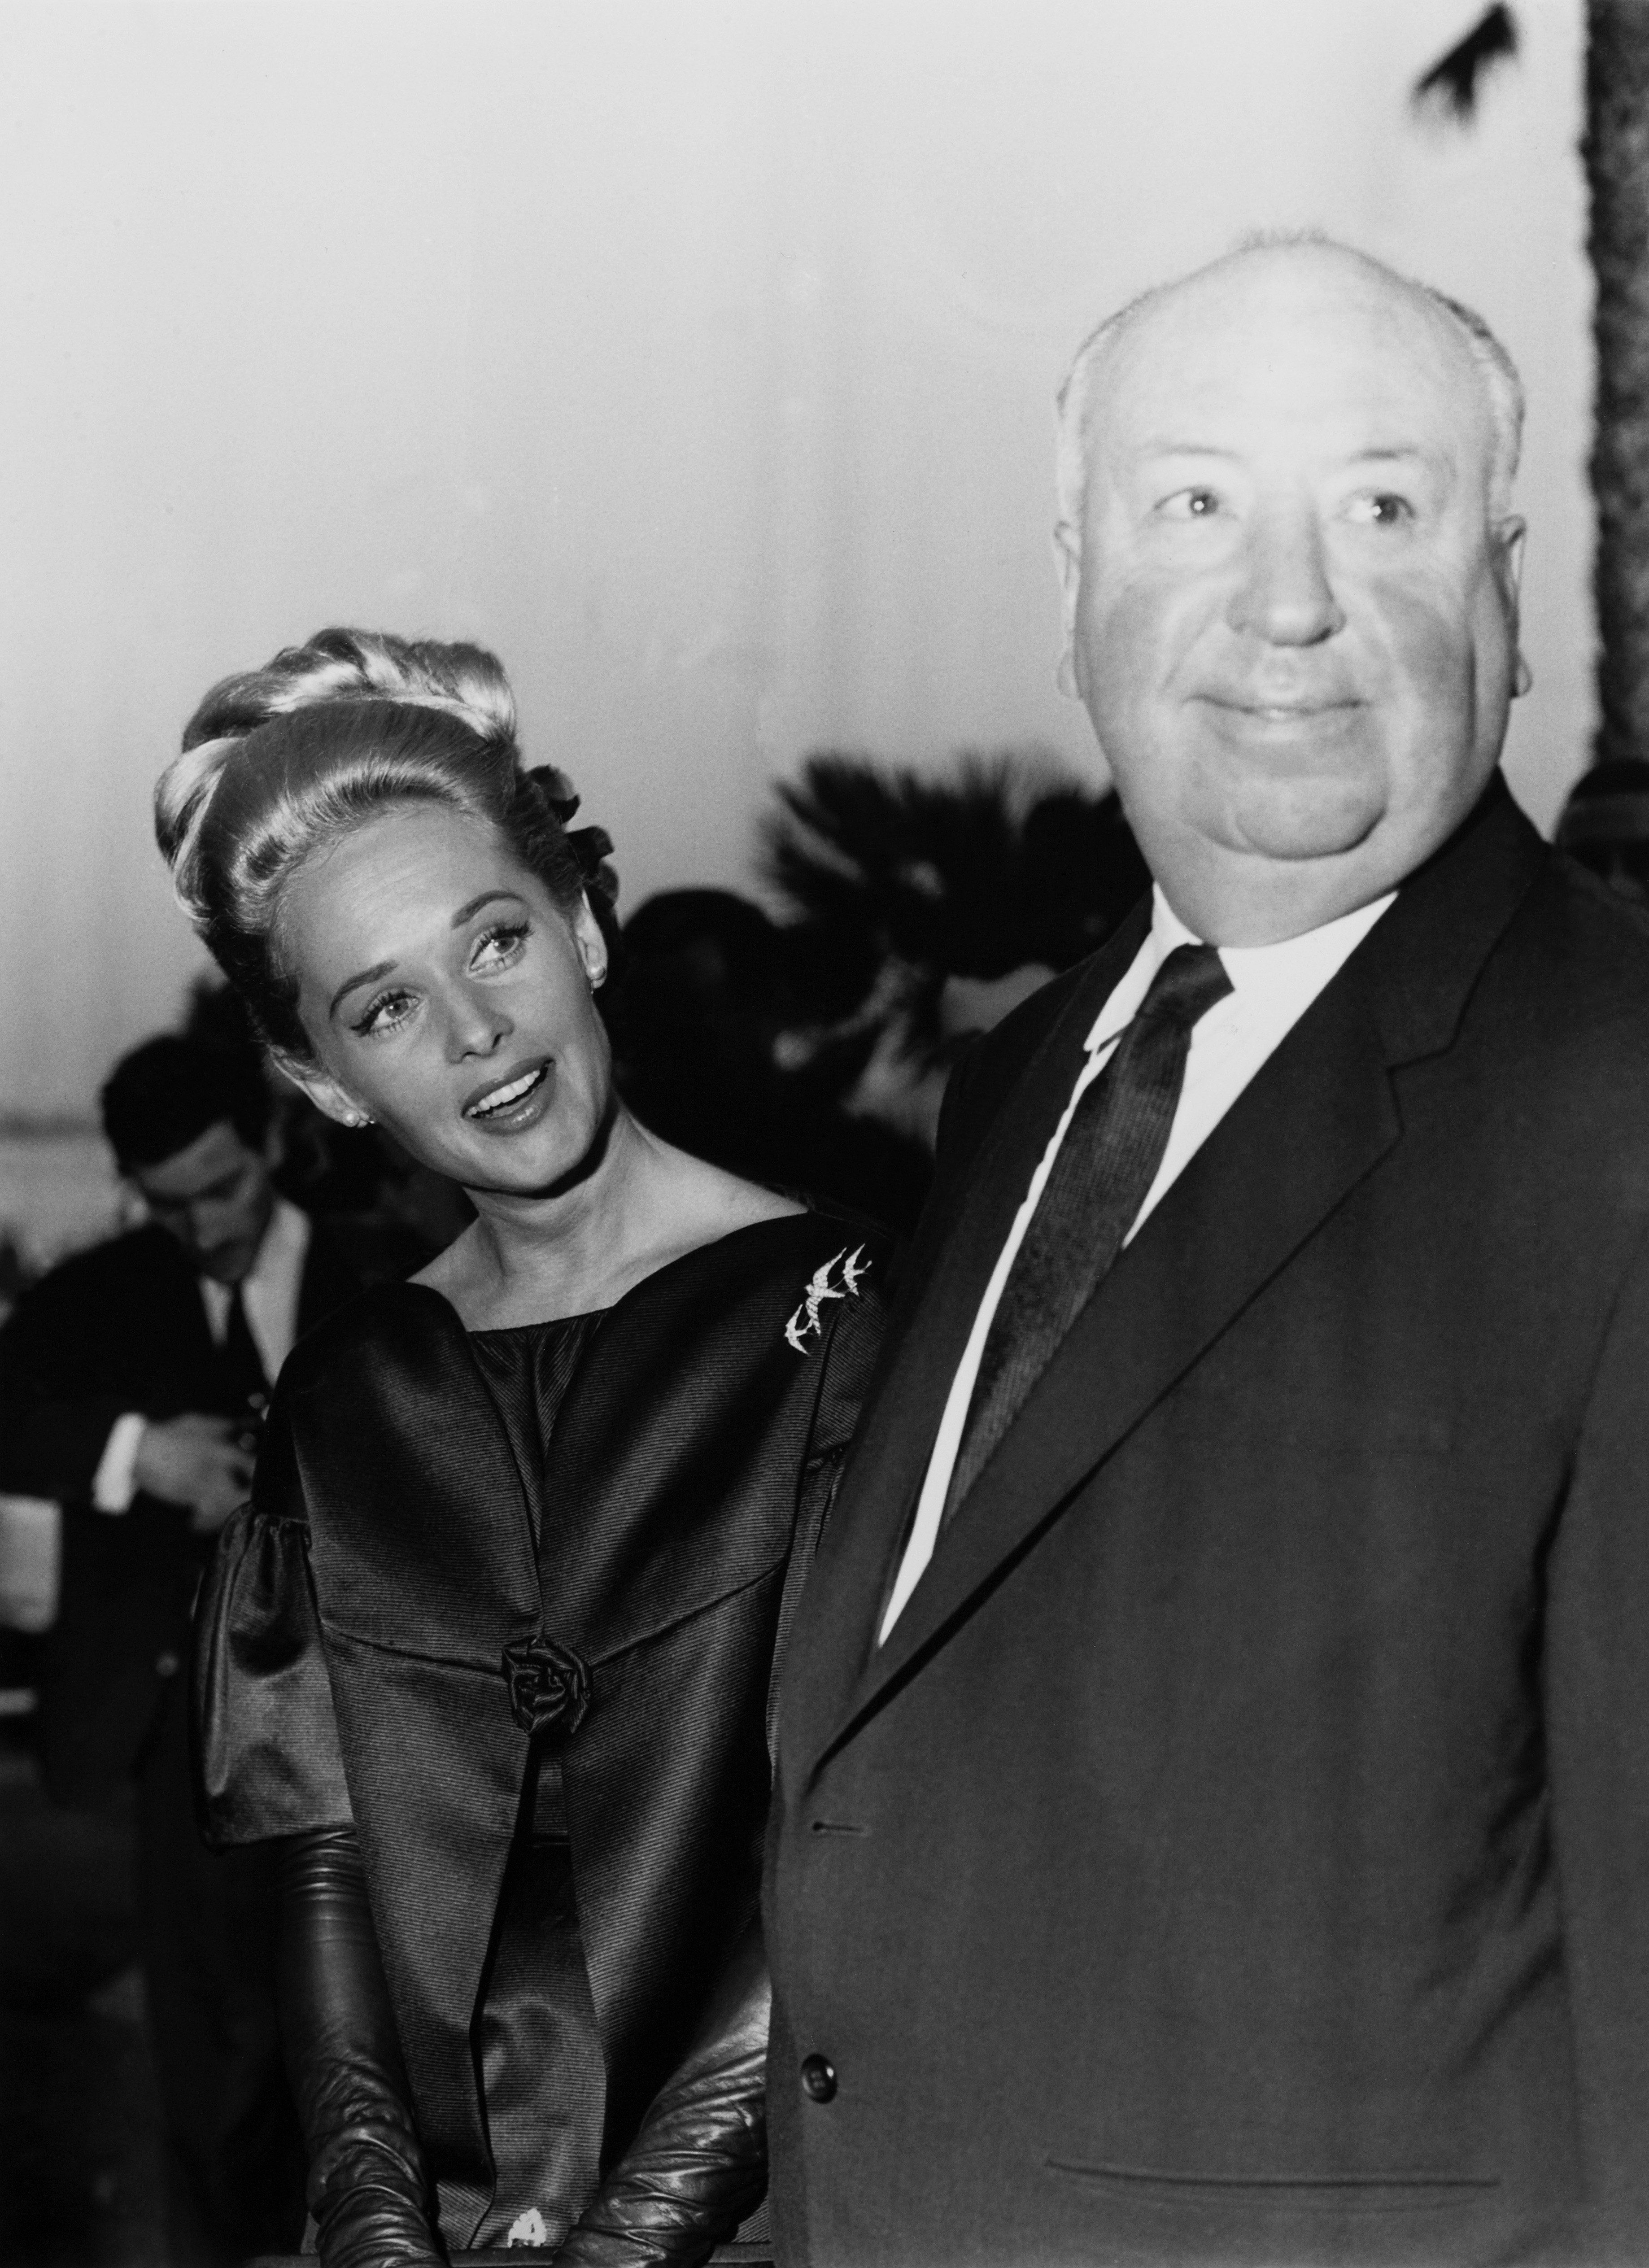 Tippi Hedren and Alfred Hitchcock at the Cannes Film Festival, May 1963.